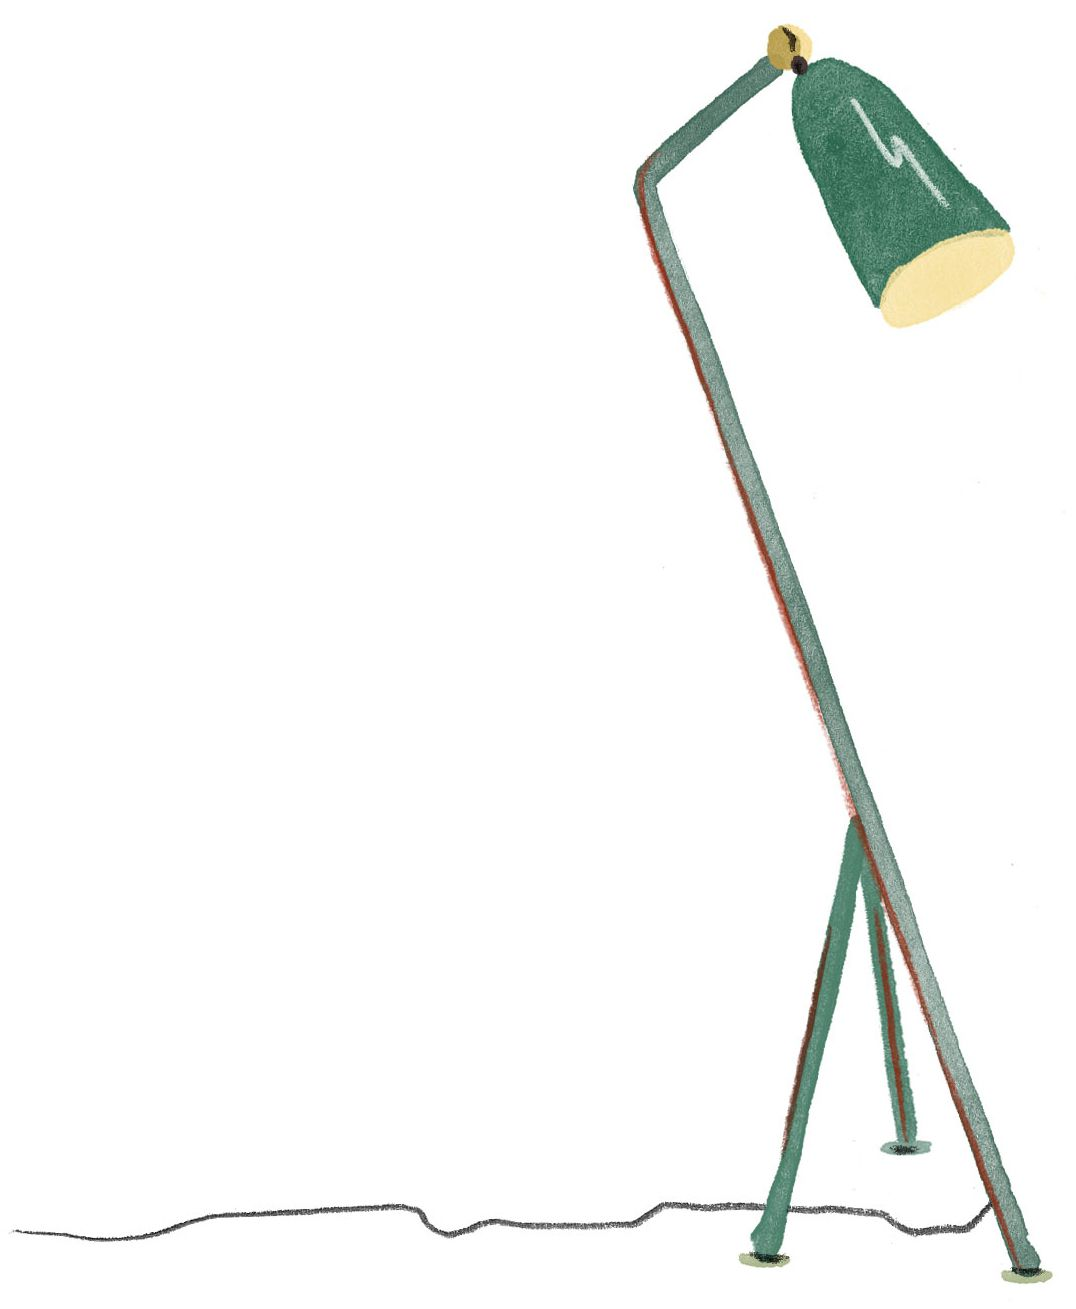 A skinny mental pole extends from a three-legged base. There is a joint at the top of the pole that bends to hold a lamp shade. It is a drawing of an industrial-modern light fixture. Illustration.